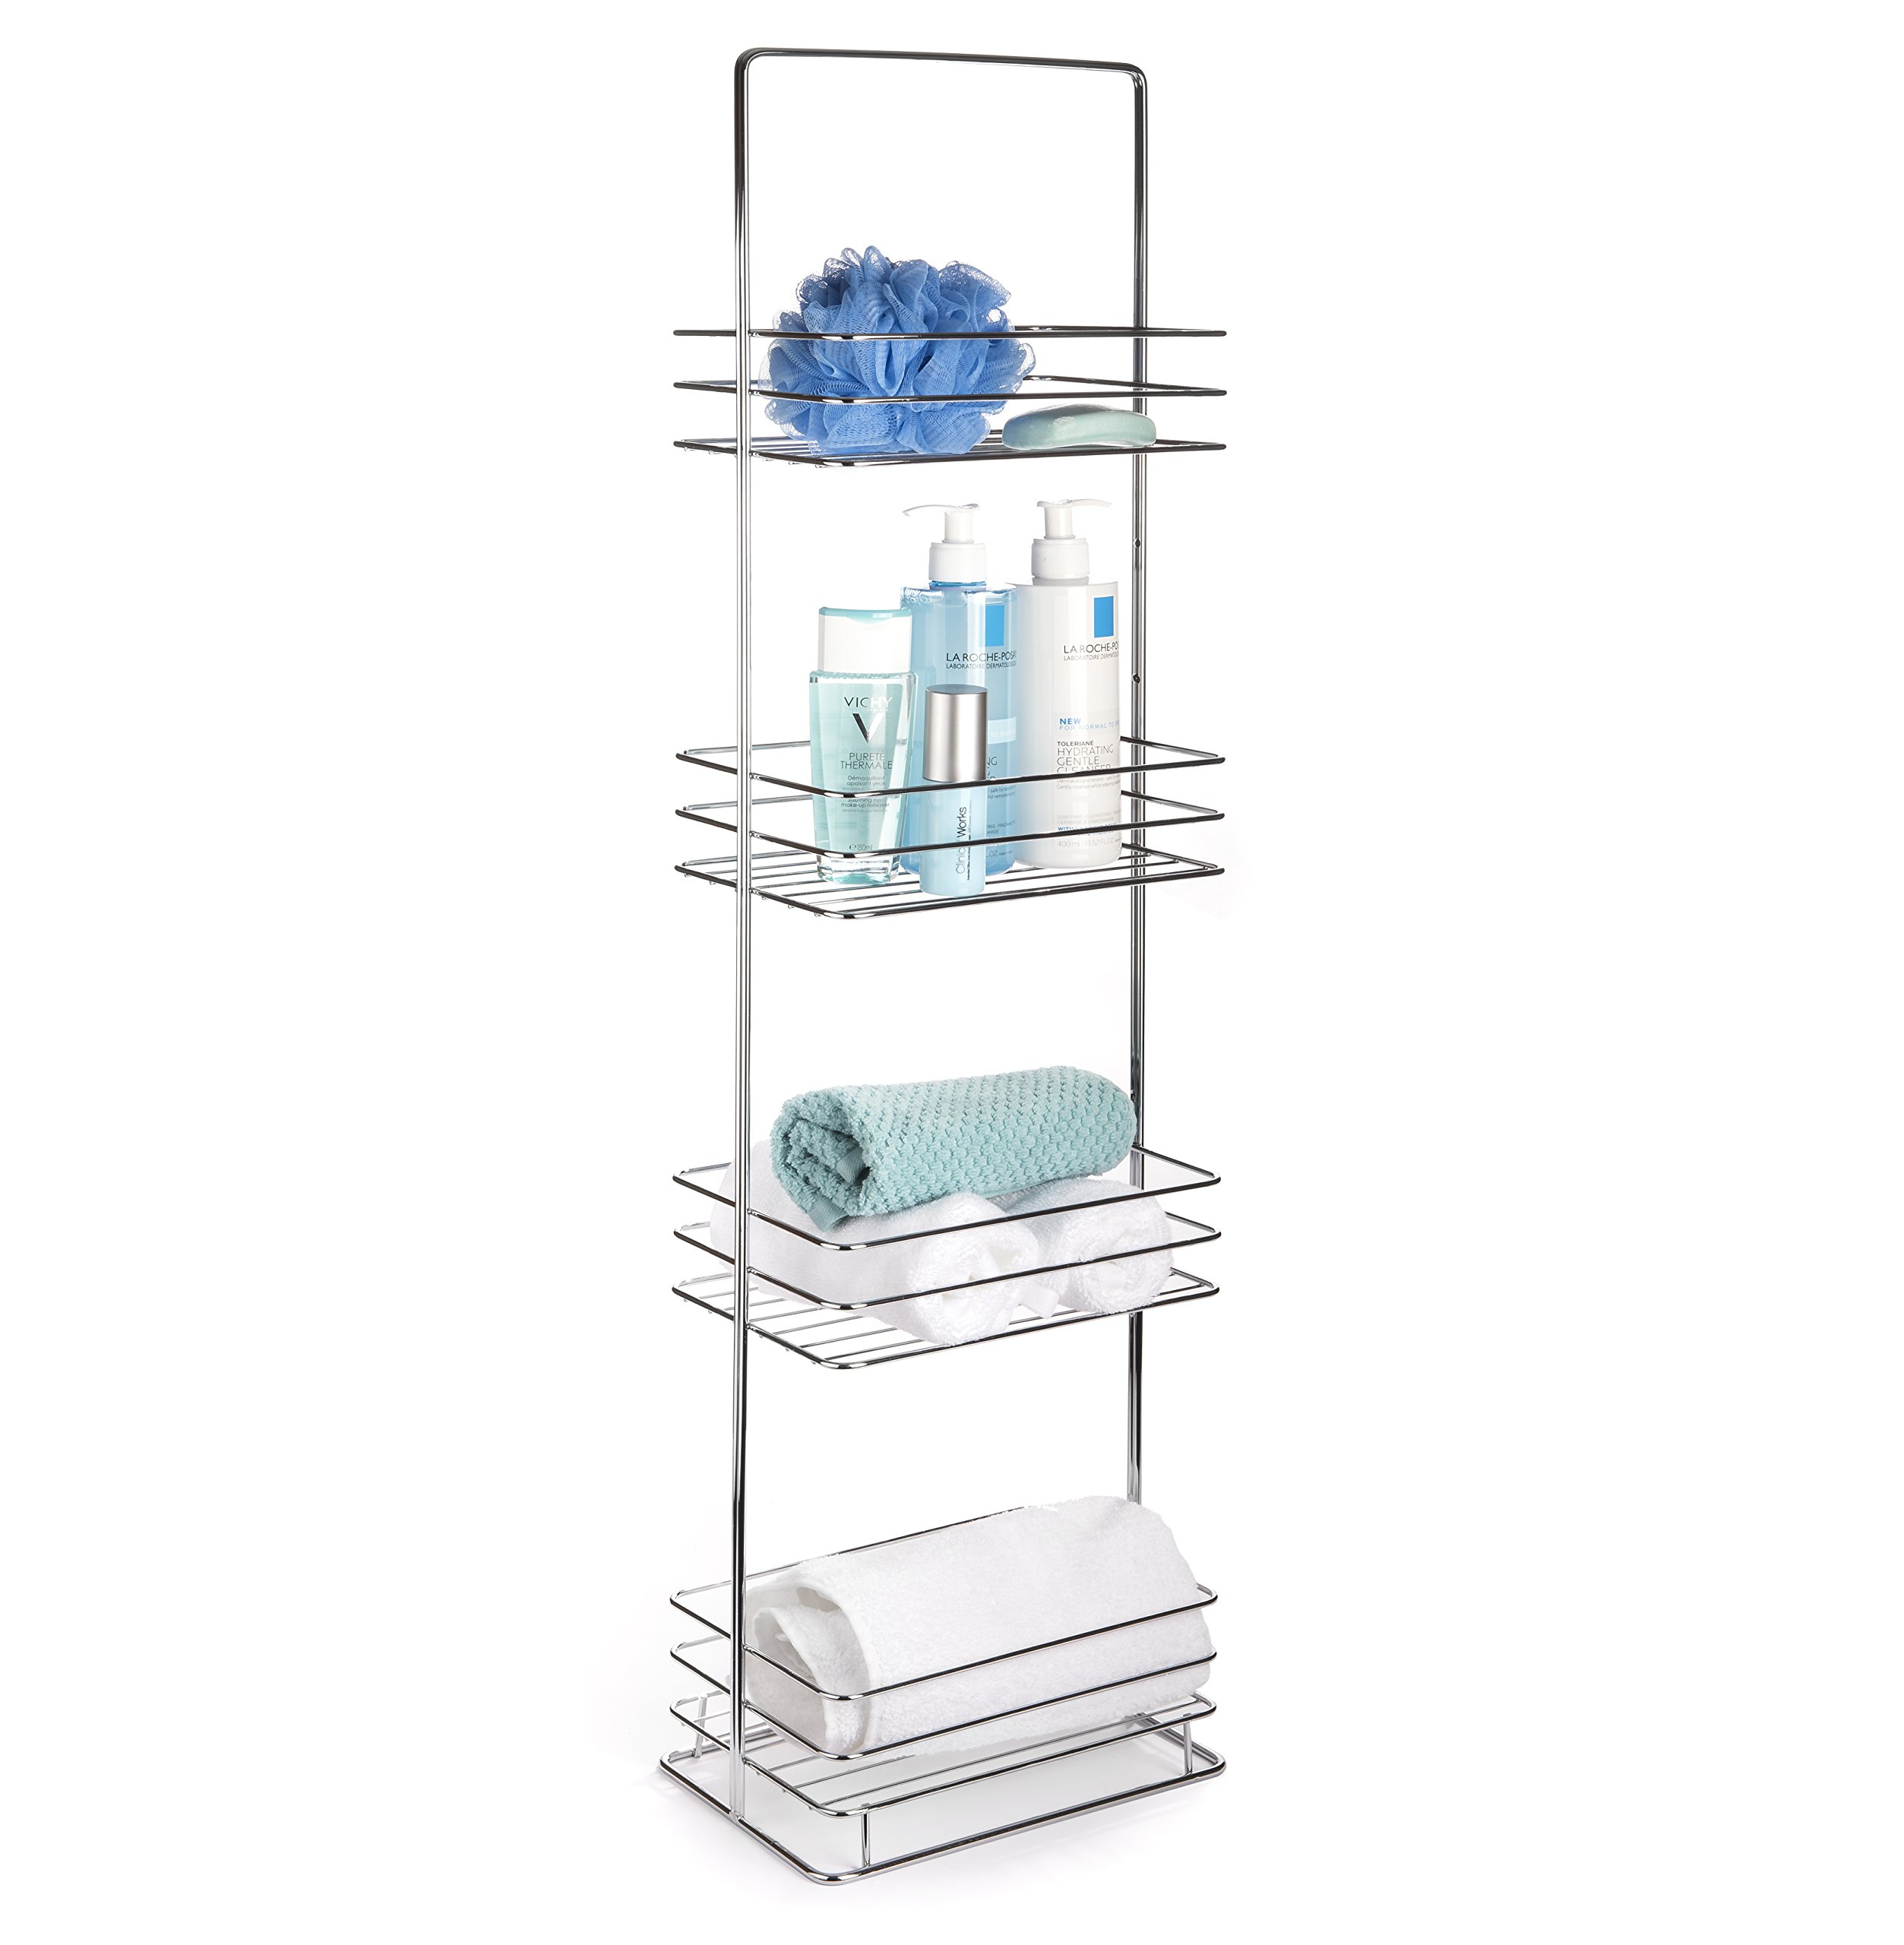 AMG and Enchante Accessories Free Standing Bathroom Spa Tower Storage Caddy, FC100002 CHR, Chrome by AMG (Image #1)